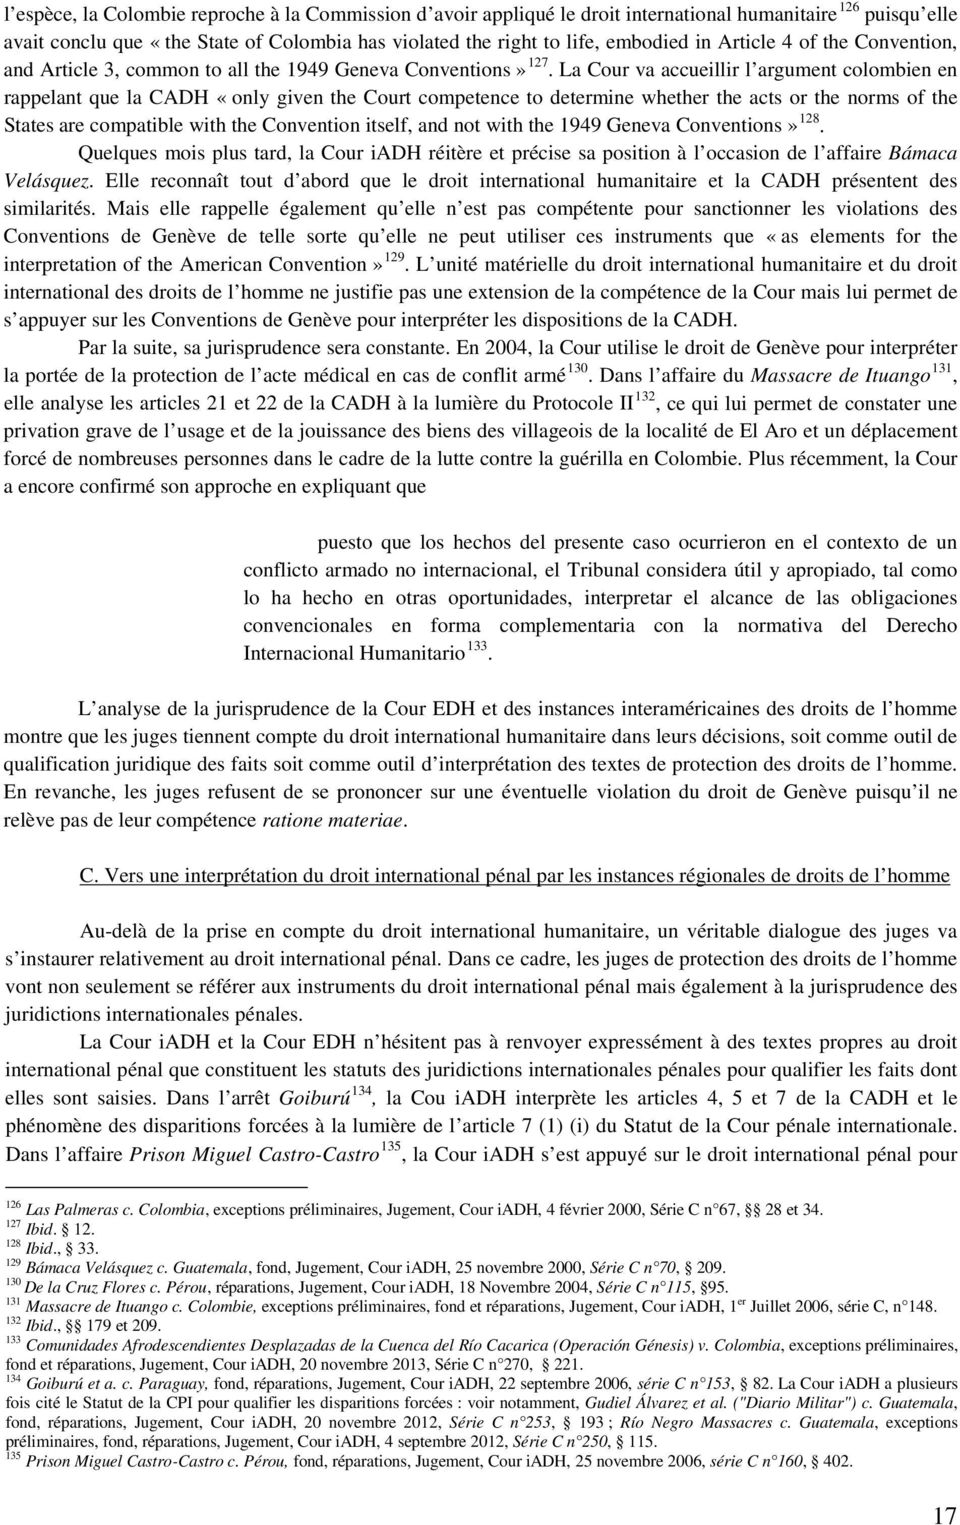 La Cour va accueillir l argument colombien en rappelant que la CADH «only given the Court competence to determine whether the acts or the norms of the States are compatible with the Convention